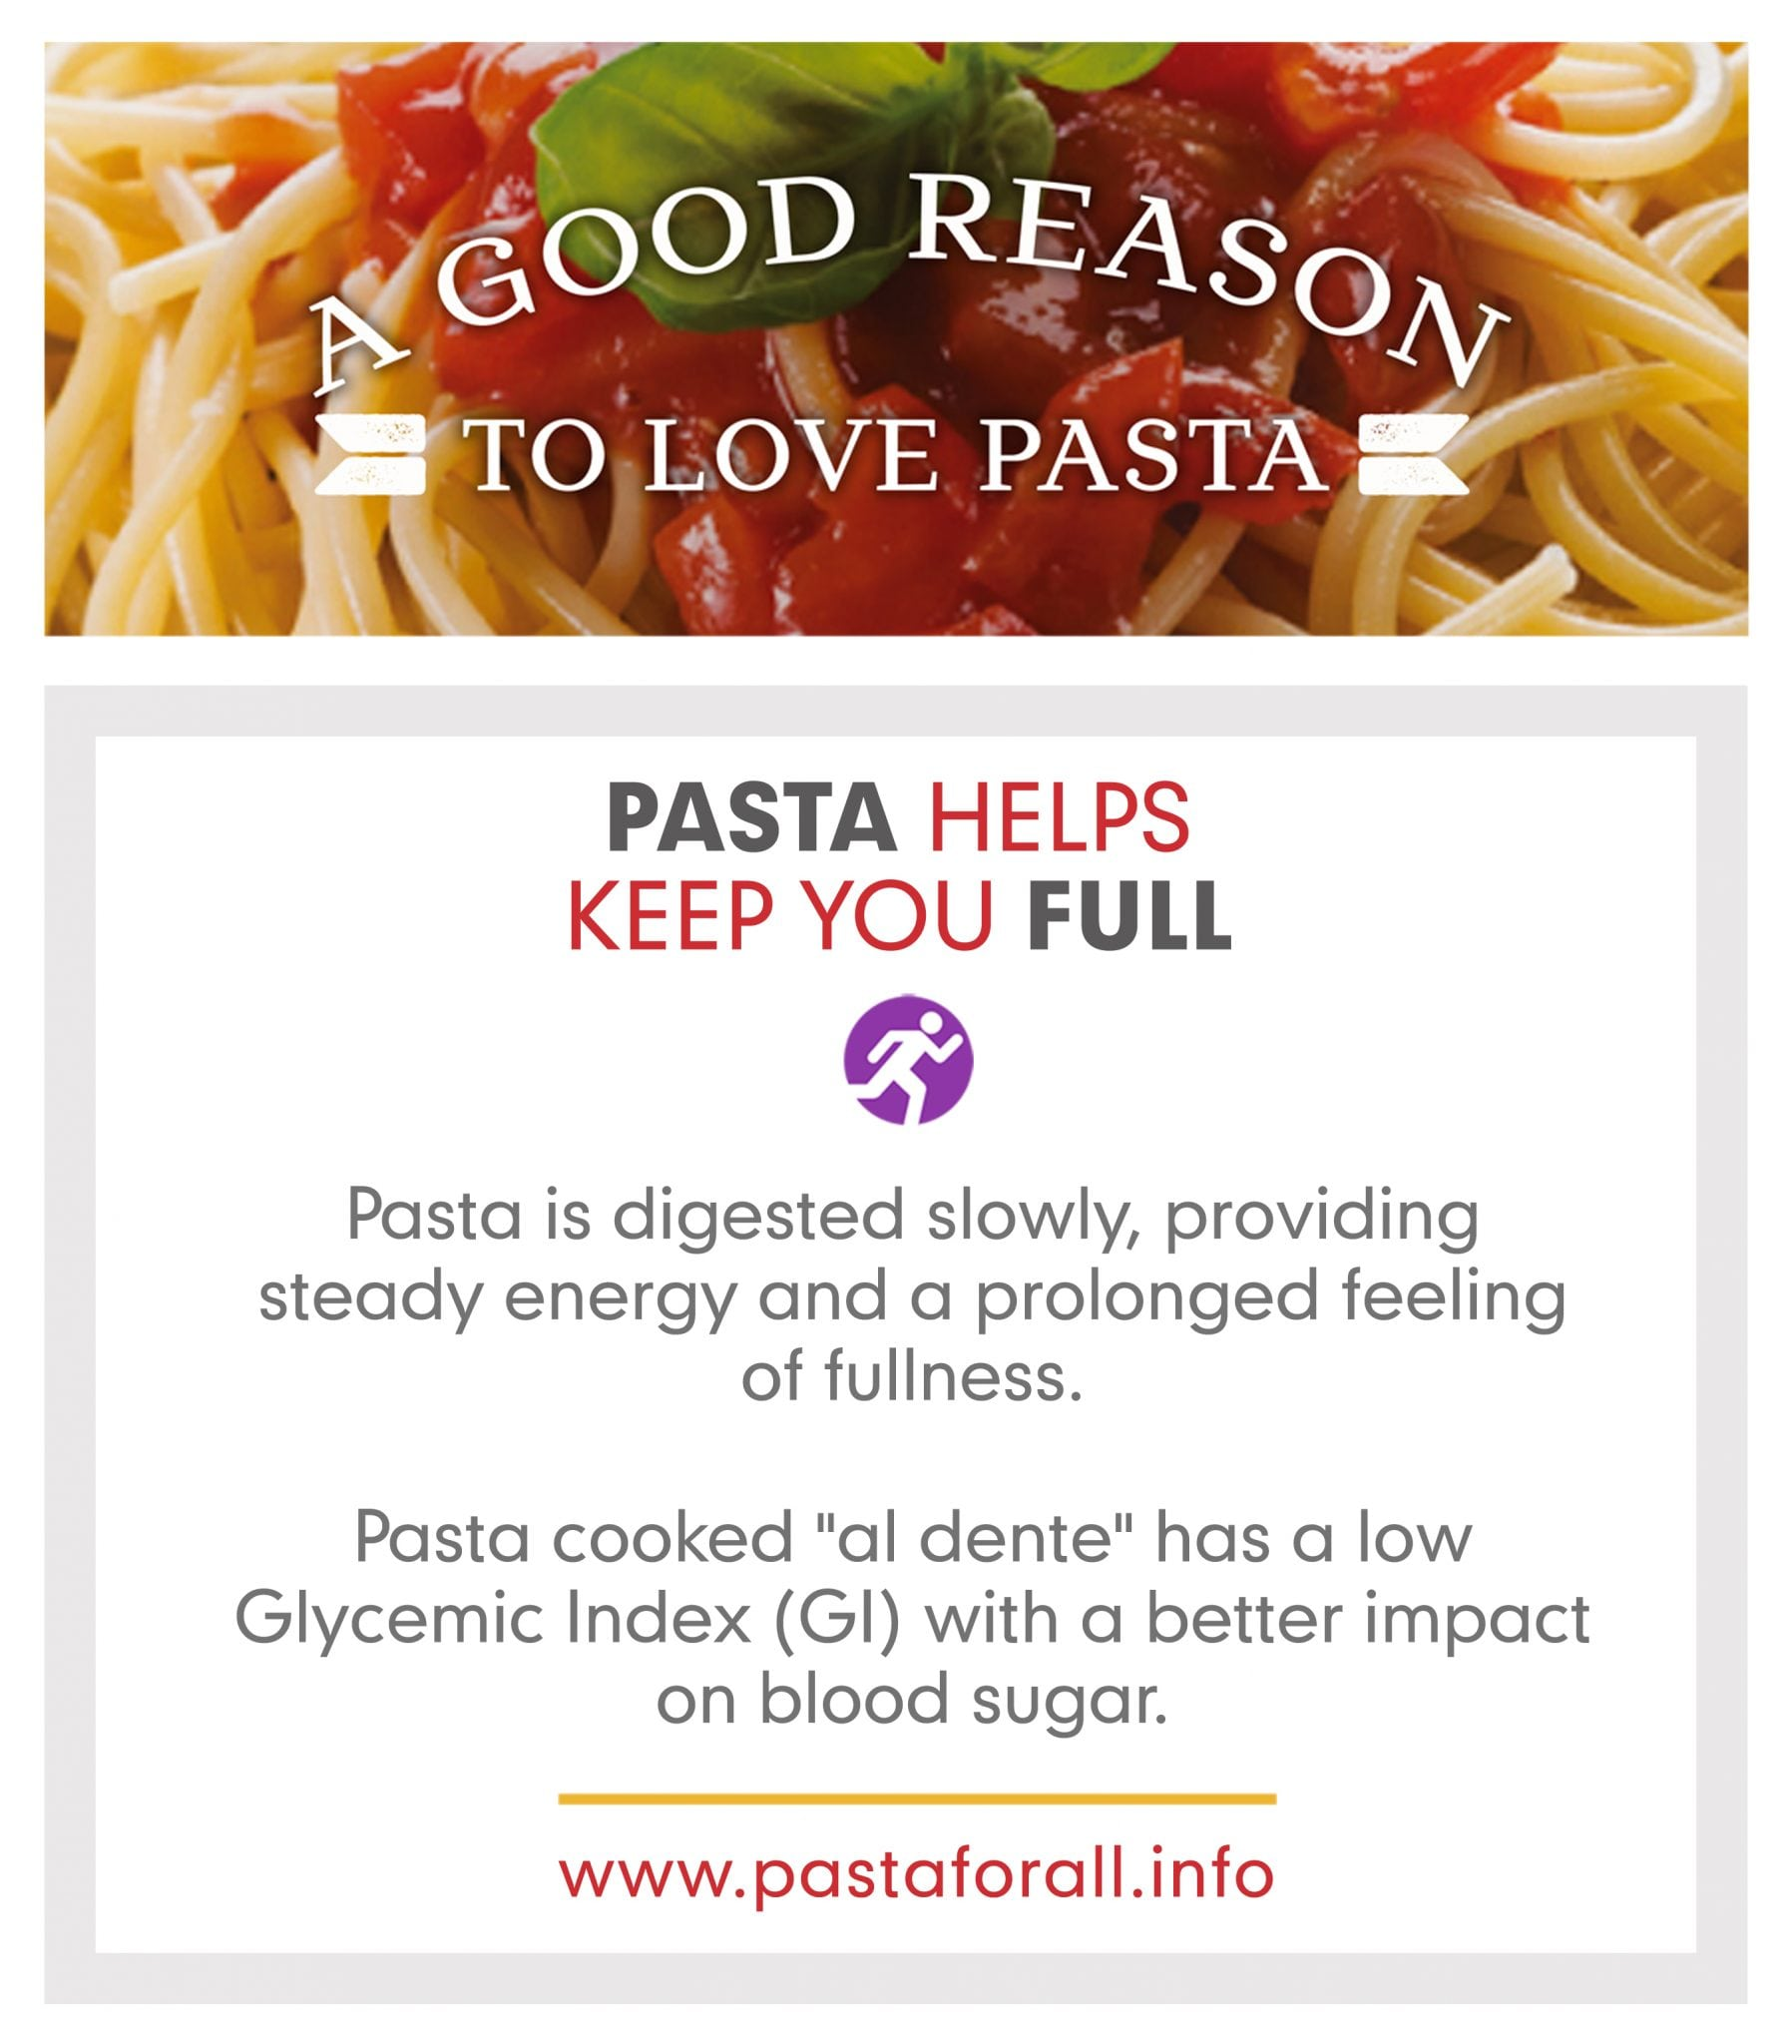 Pasta Helps Keep You Full